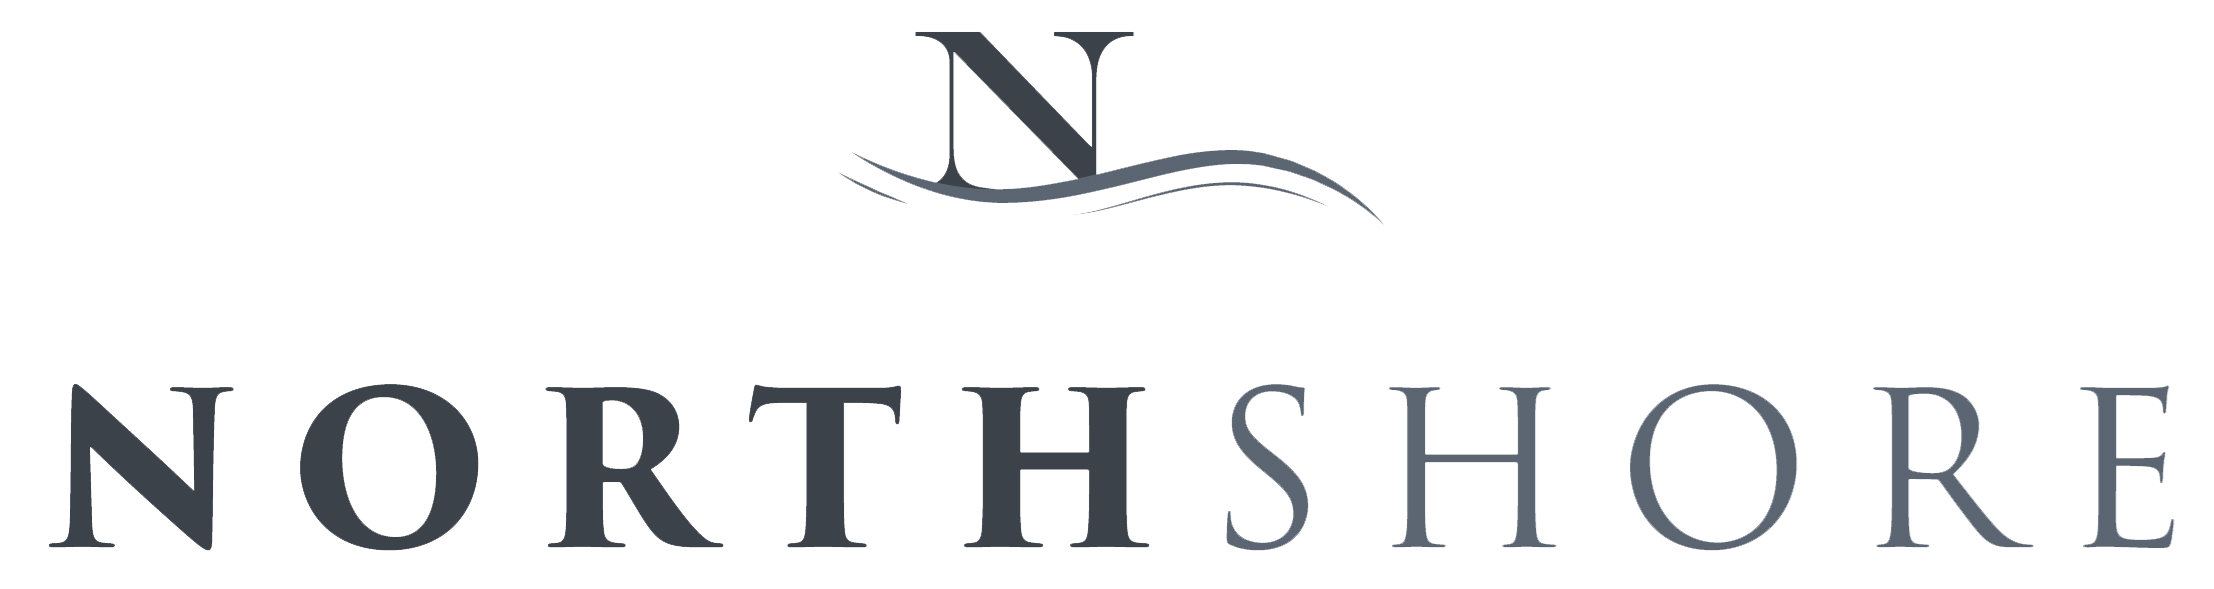 Northshore Austin Logo at Northshore Austin, Austin, Texas